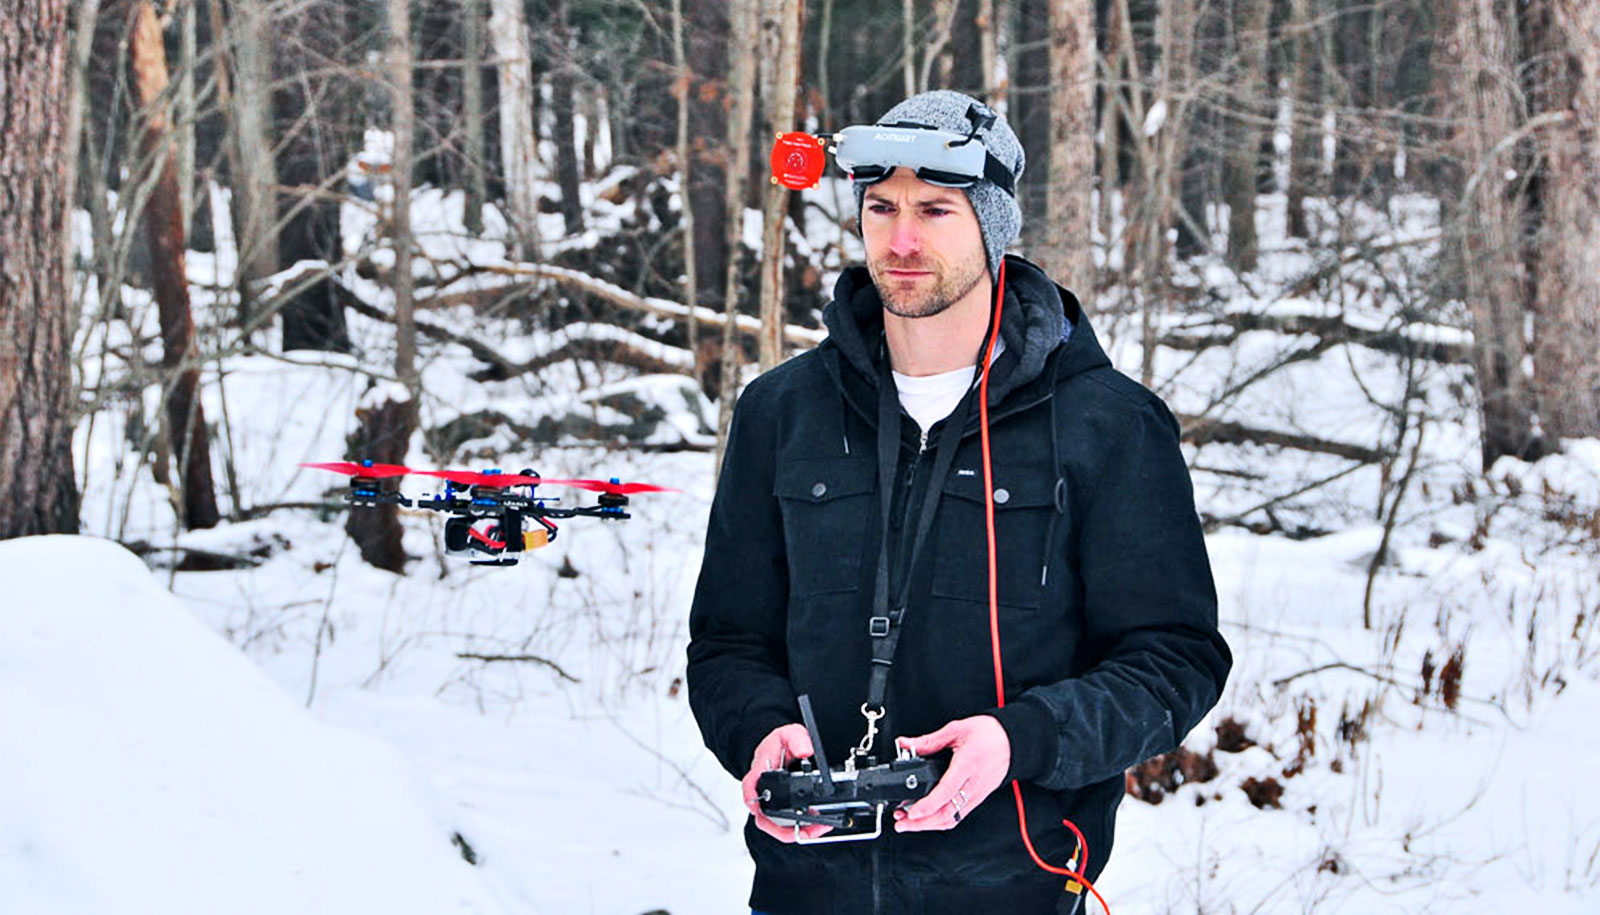 Neuroflight' drone controller gets a boost from A I  - Futurity